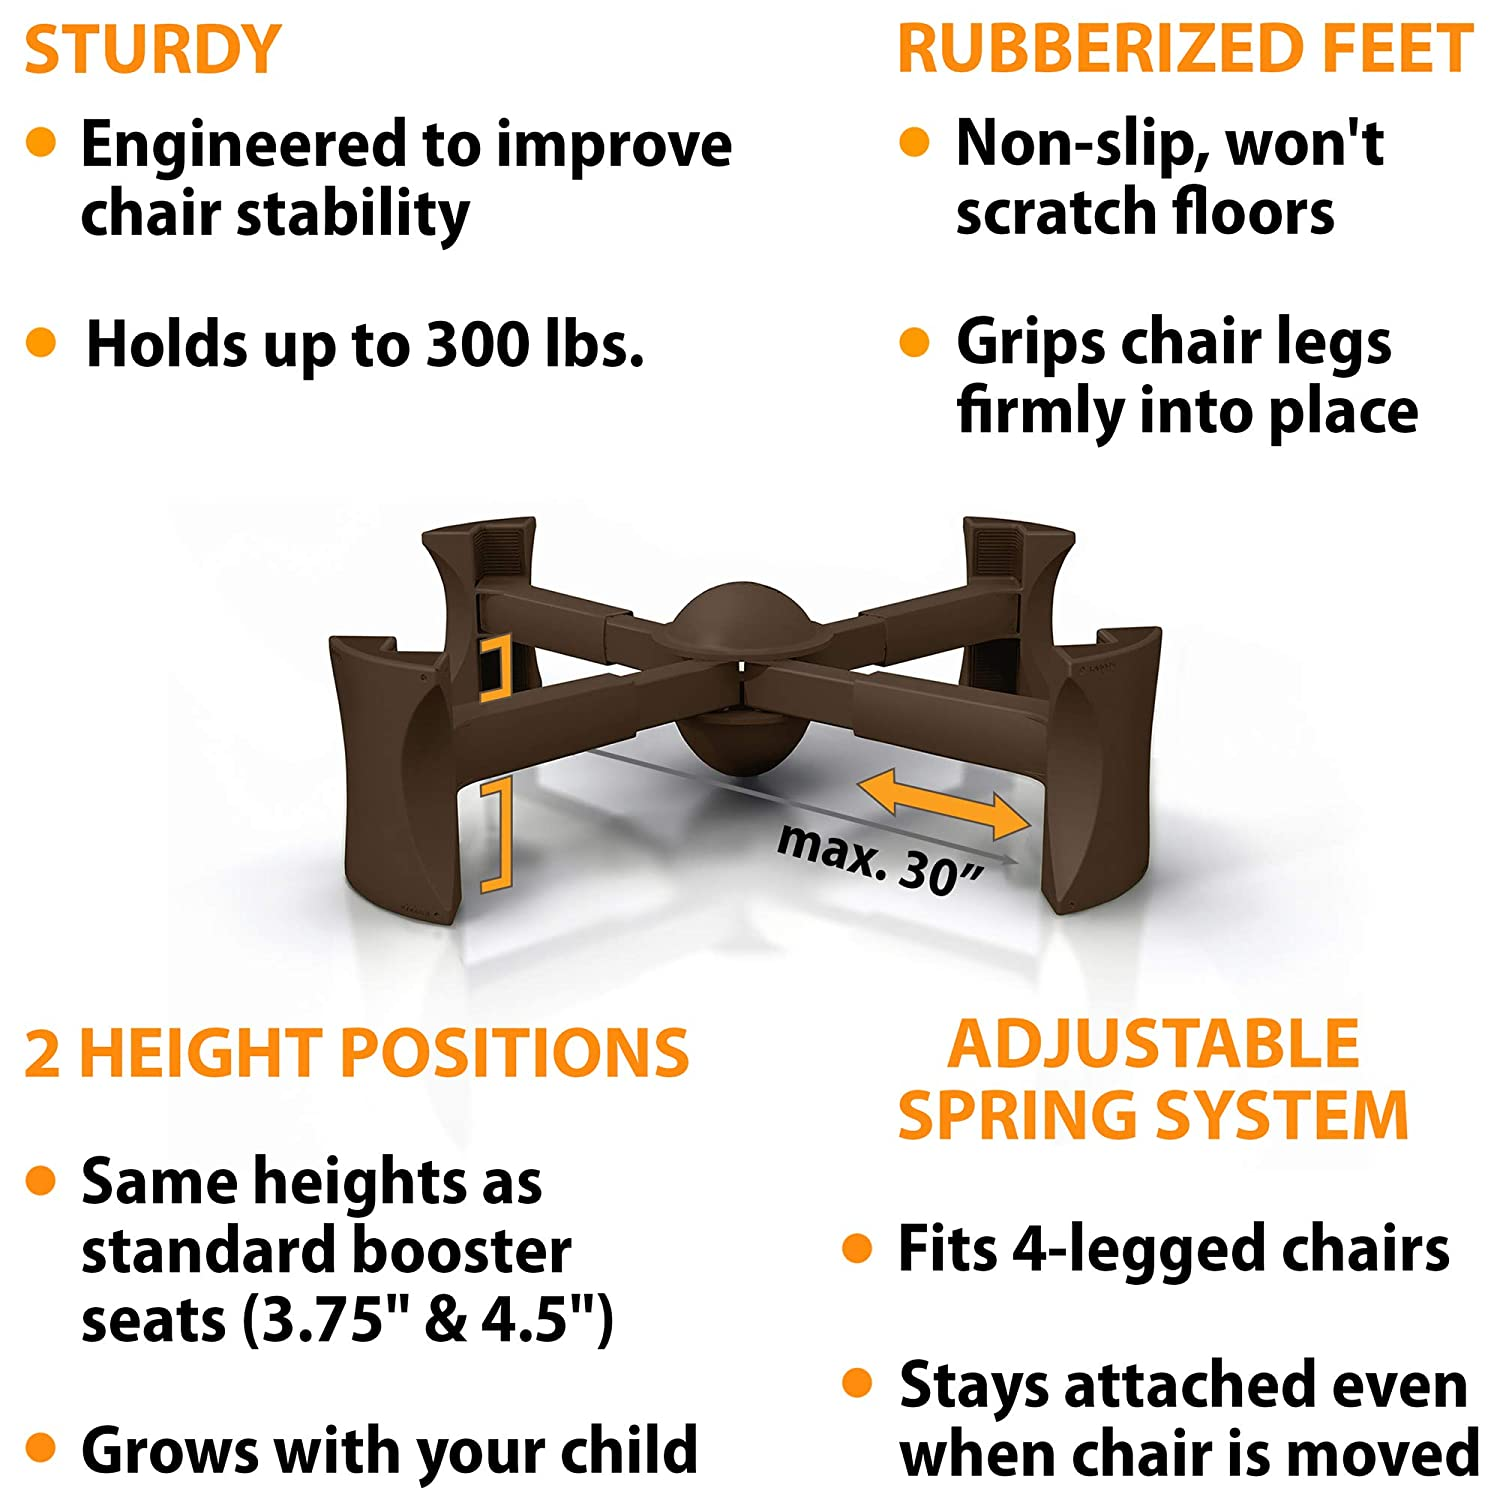 KABOOST Booster Seat for Dining Table, Chocolate - Goes Under The Chair - Portable Chair Booster for Toddlers : Chair Booster Seats : Baby